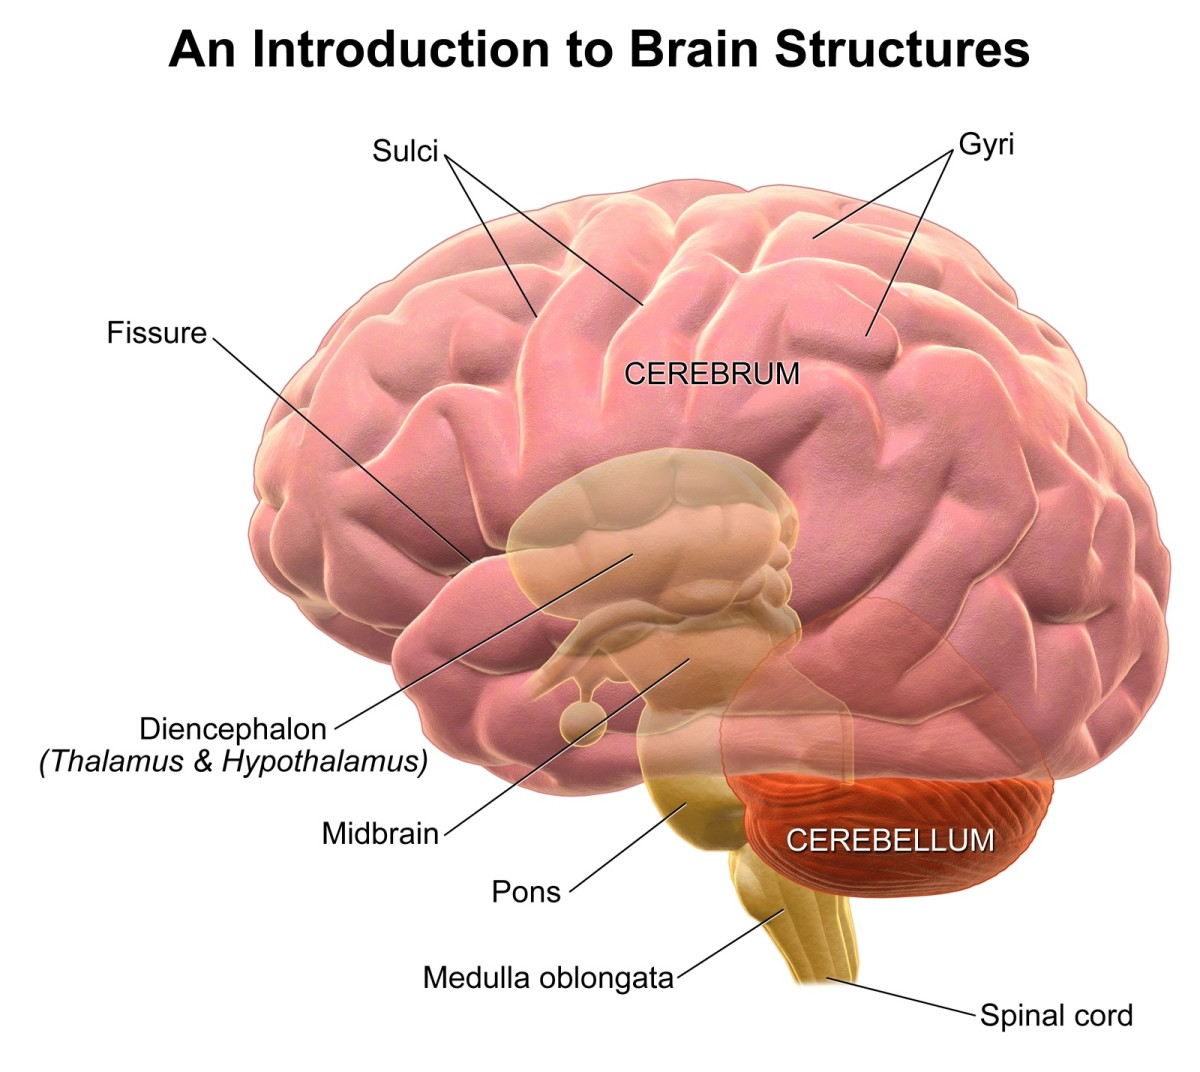 Basic structure of the brain